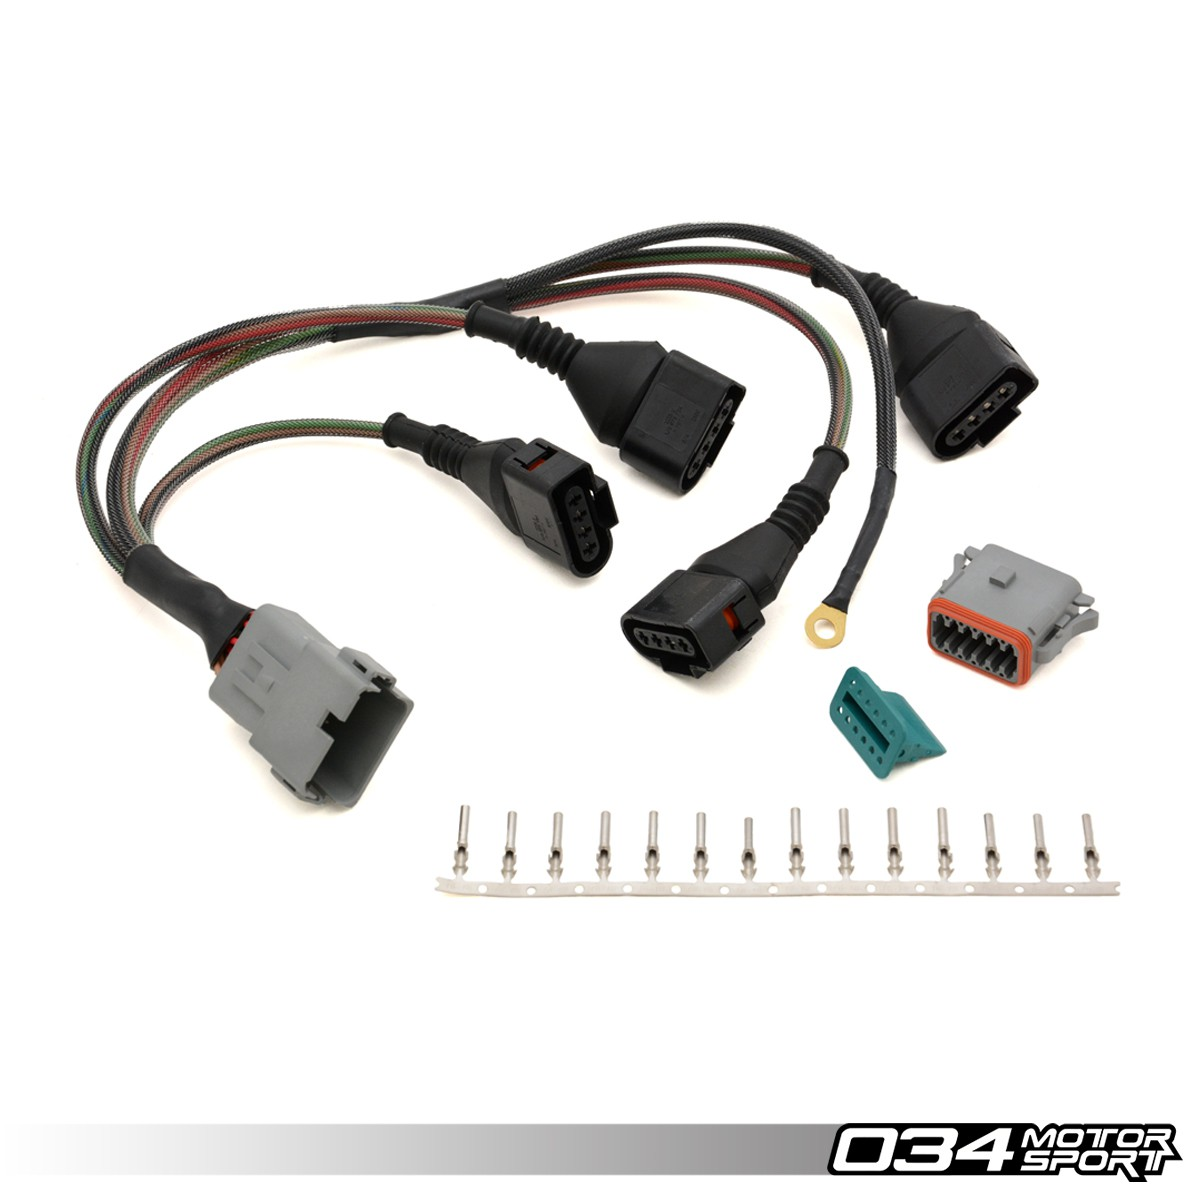 repair update harness audi volkswagen 18t with 4 wire coils 034motorsport 034 701 0004 2 repair update harness, audi volkswagen 1 8t with 4 wire coils wire harness repair kit at arjmand.co